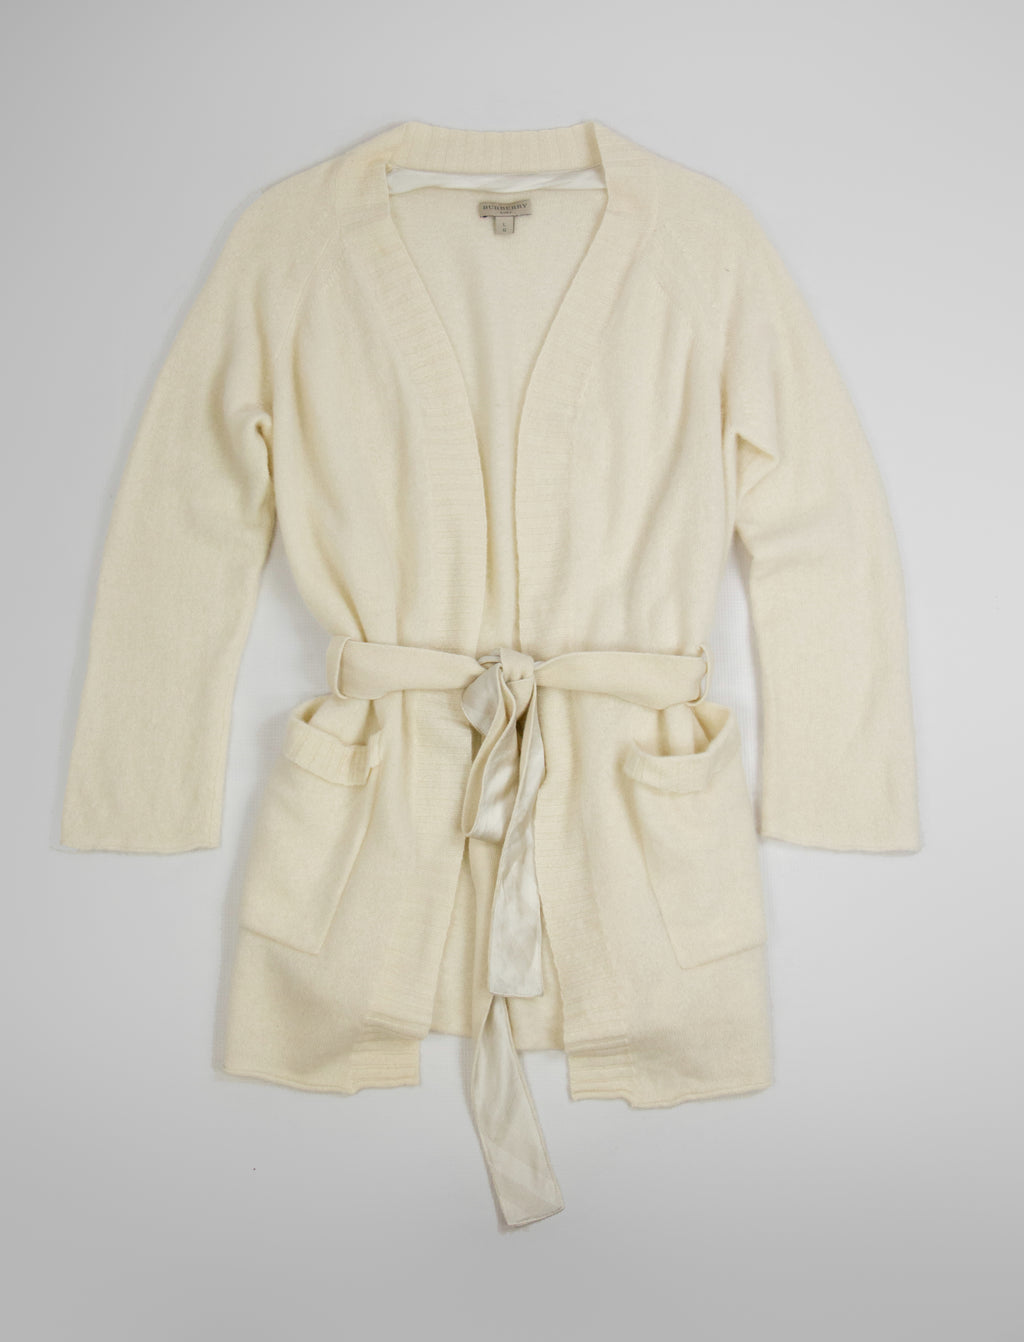 BURBERRY Body Cream White Belted Cashmere Cardigan, SIZE L - secondfirst